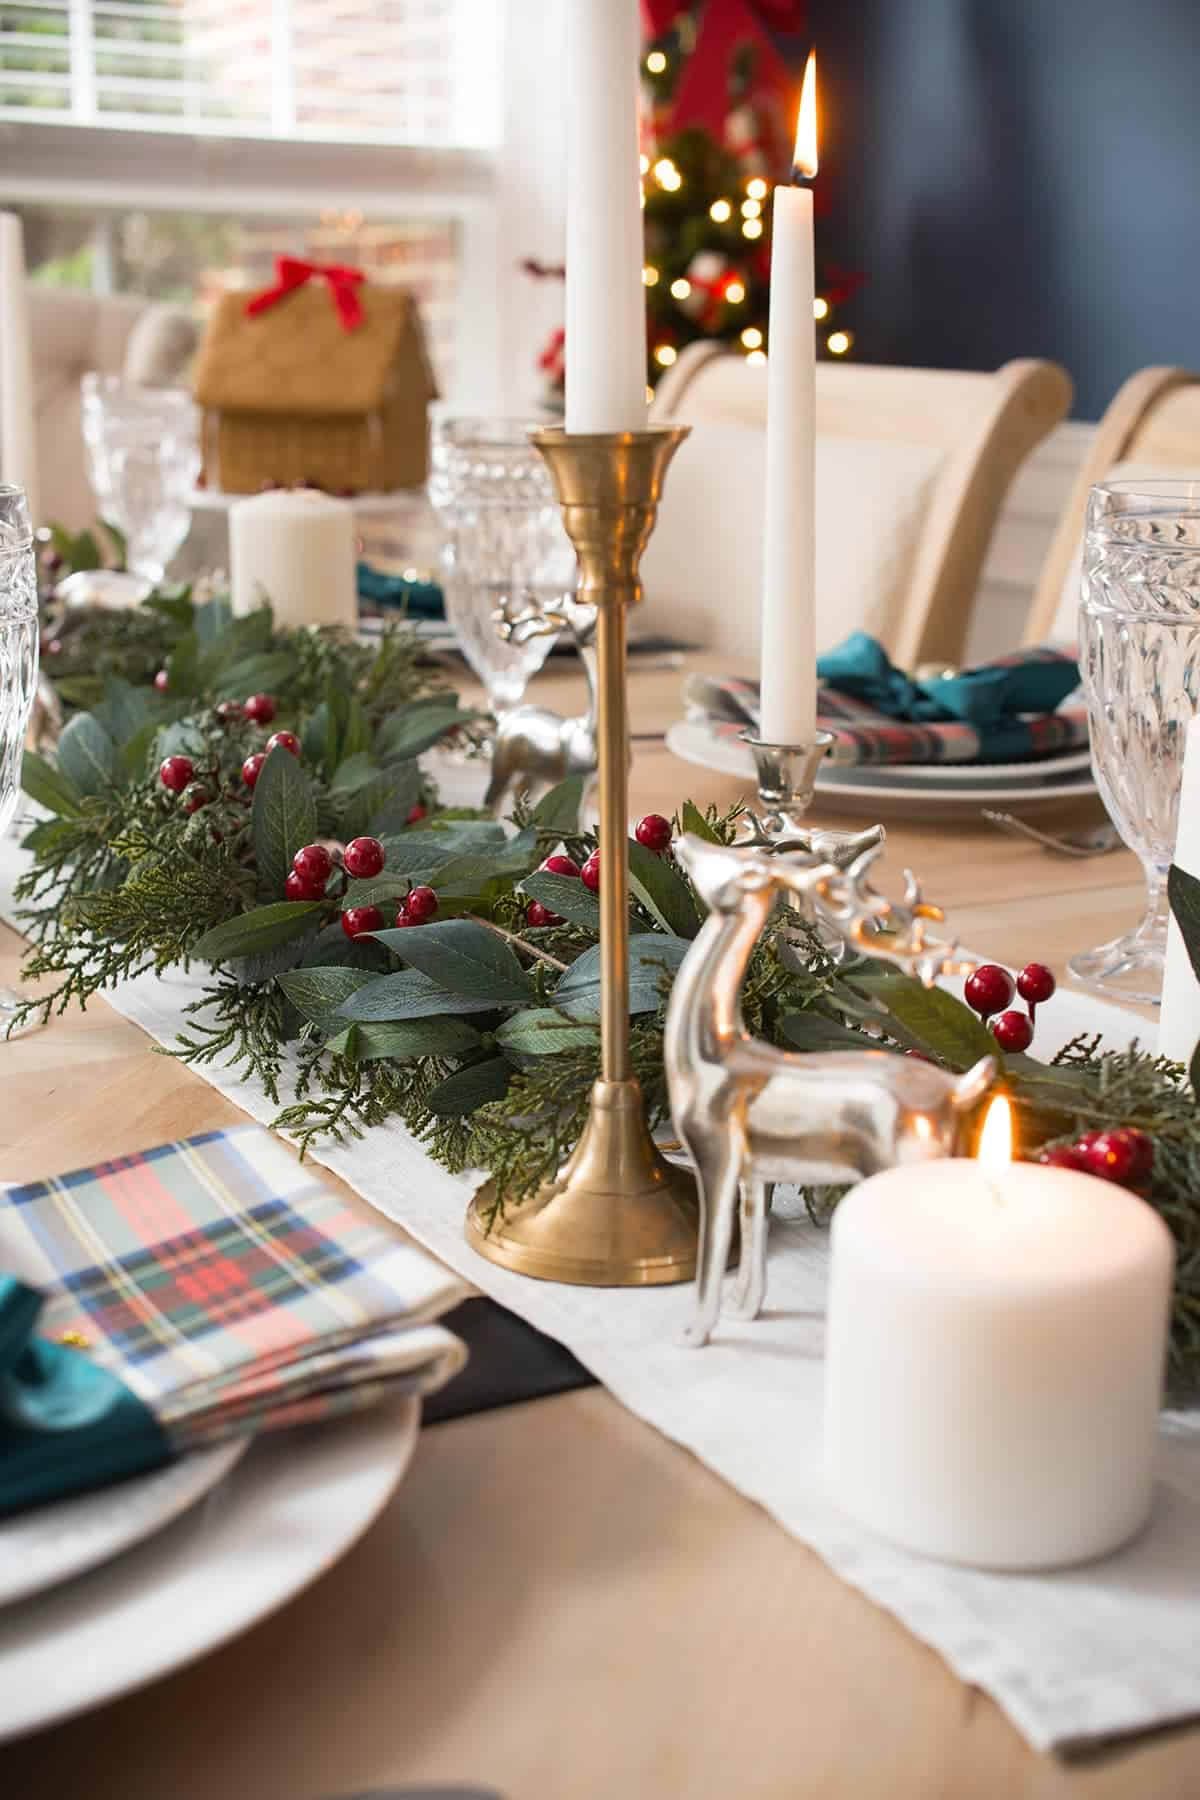 Christmas Table Centerpiece with Tartan plaid and red berry & bay leaf garland. Brass accents, white candles.